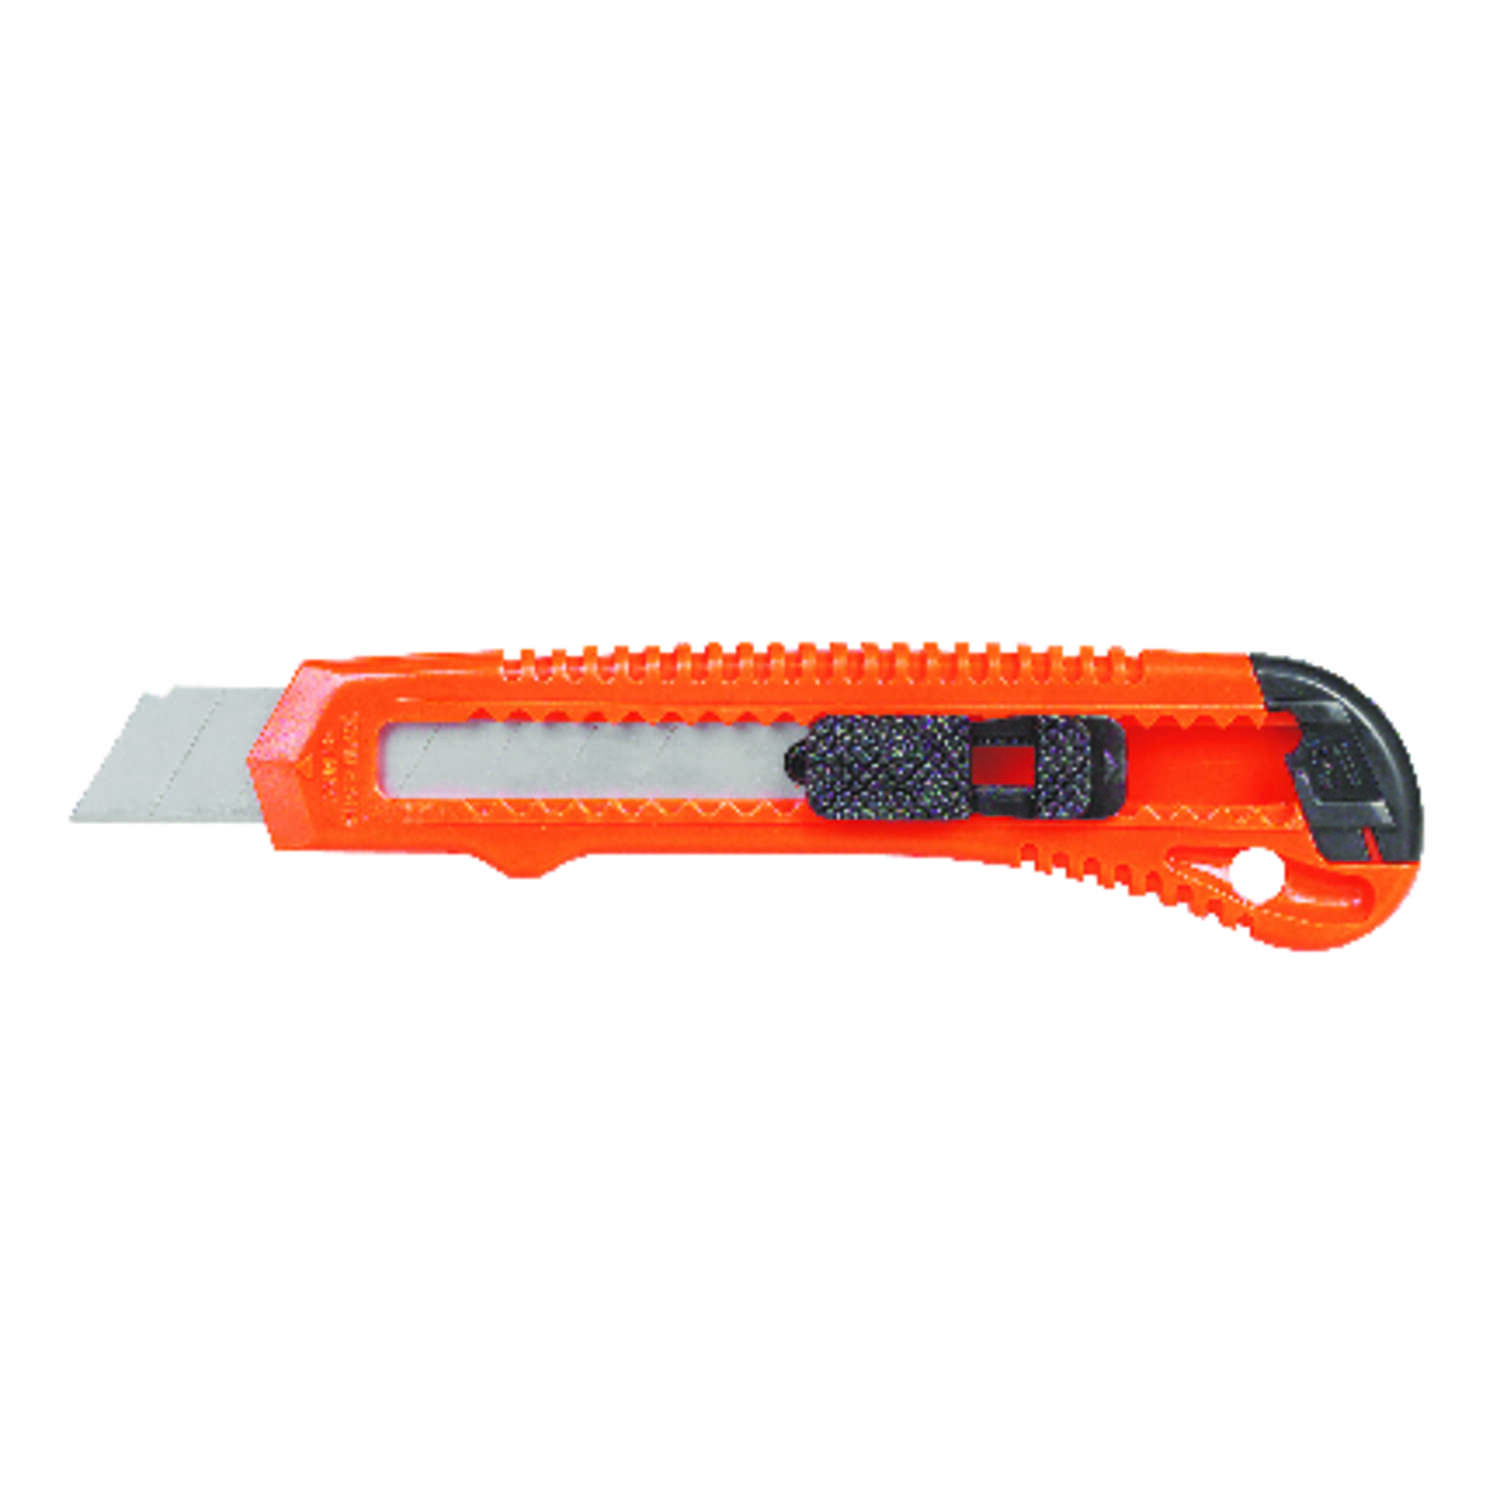 Ace  5.5 in. Sliding  Utility Knife With Blade Snapper  Orange  1 pc.